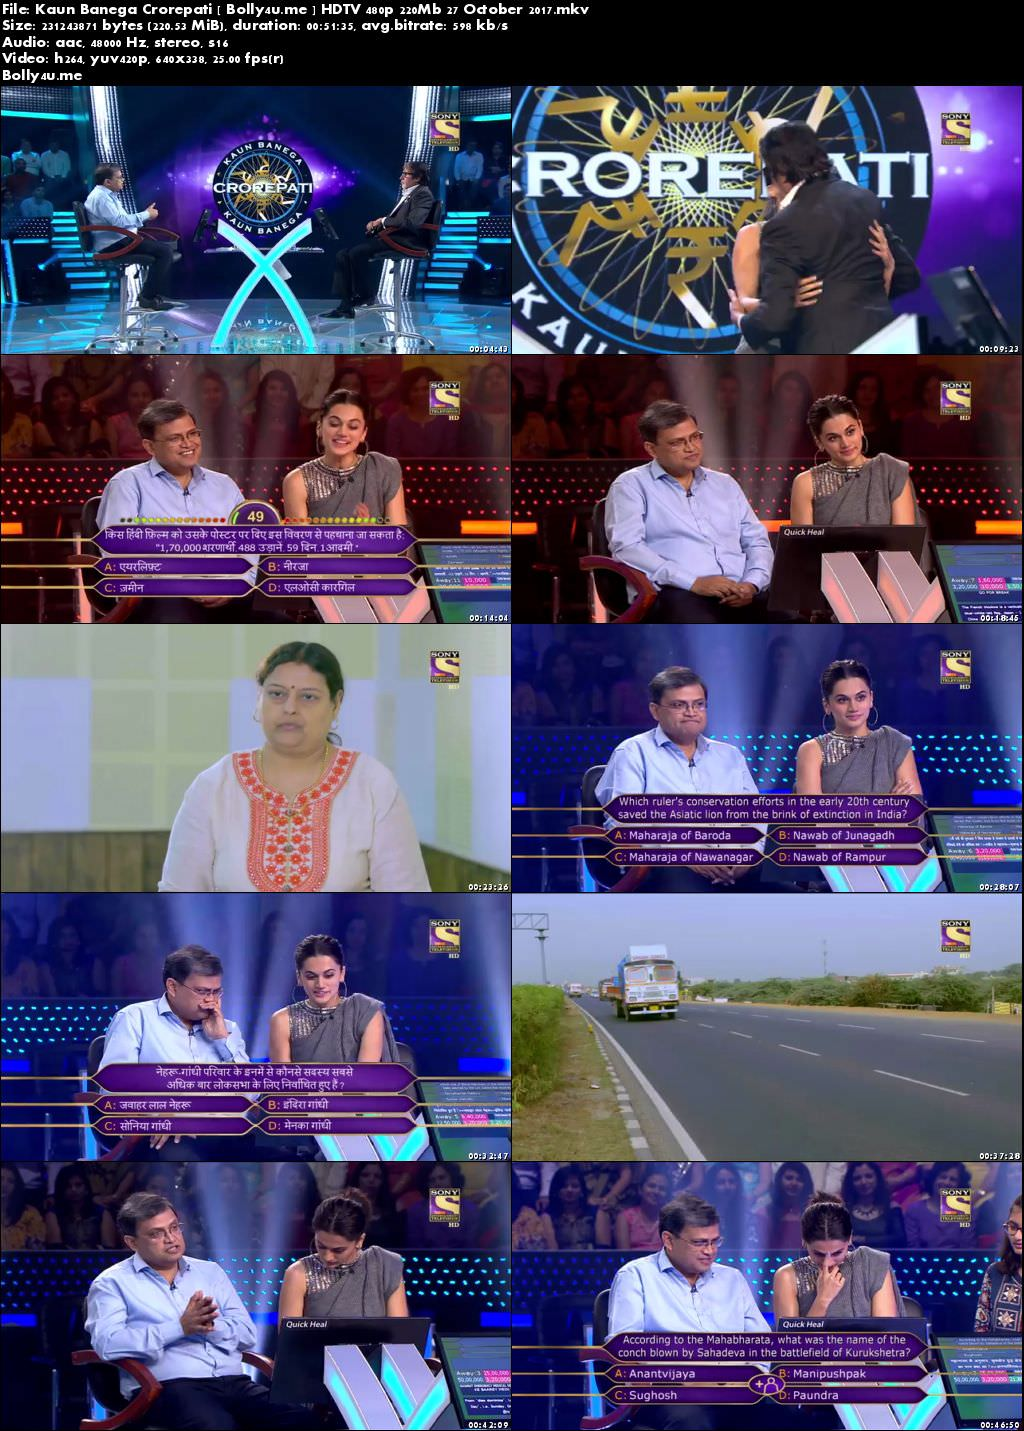 Kaun Banega Crorepati HDTV 480p 200Mb 27 October 2017 Download